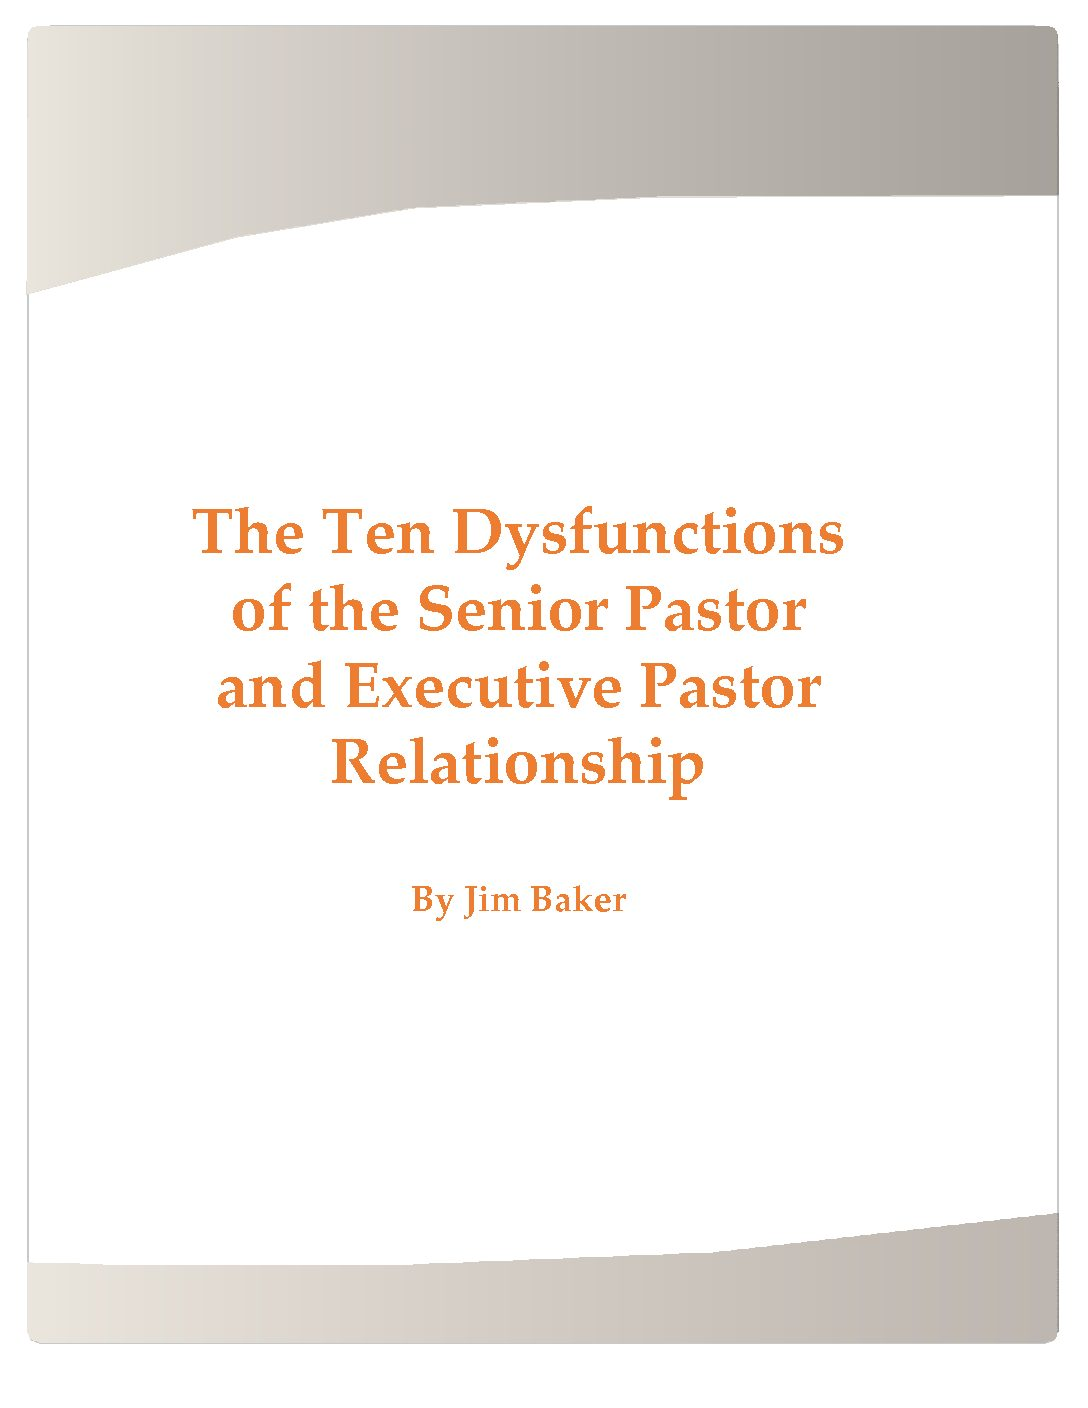 The Ten Dysfunctions of the Senior Pastor and Executive Pastor